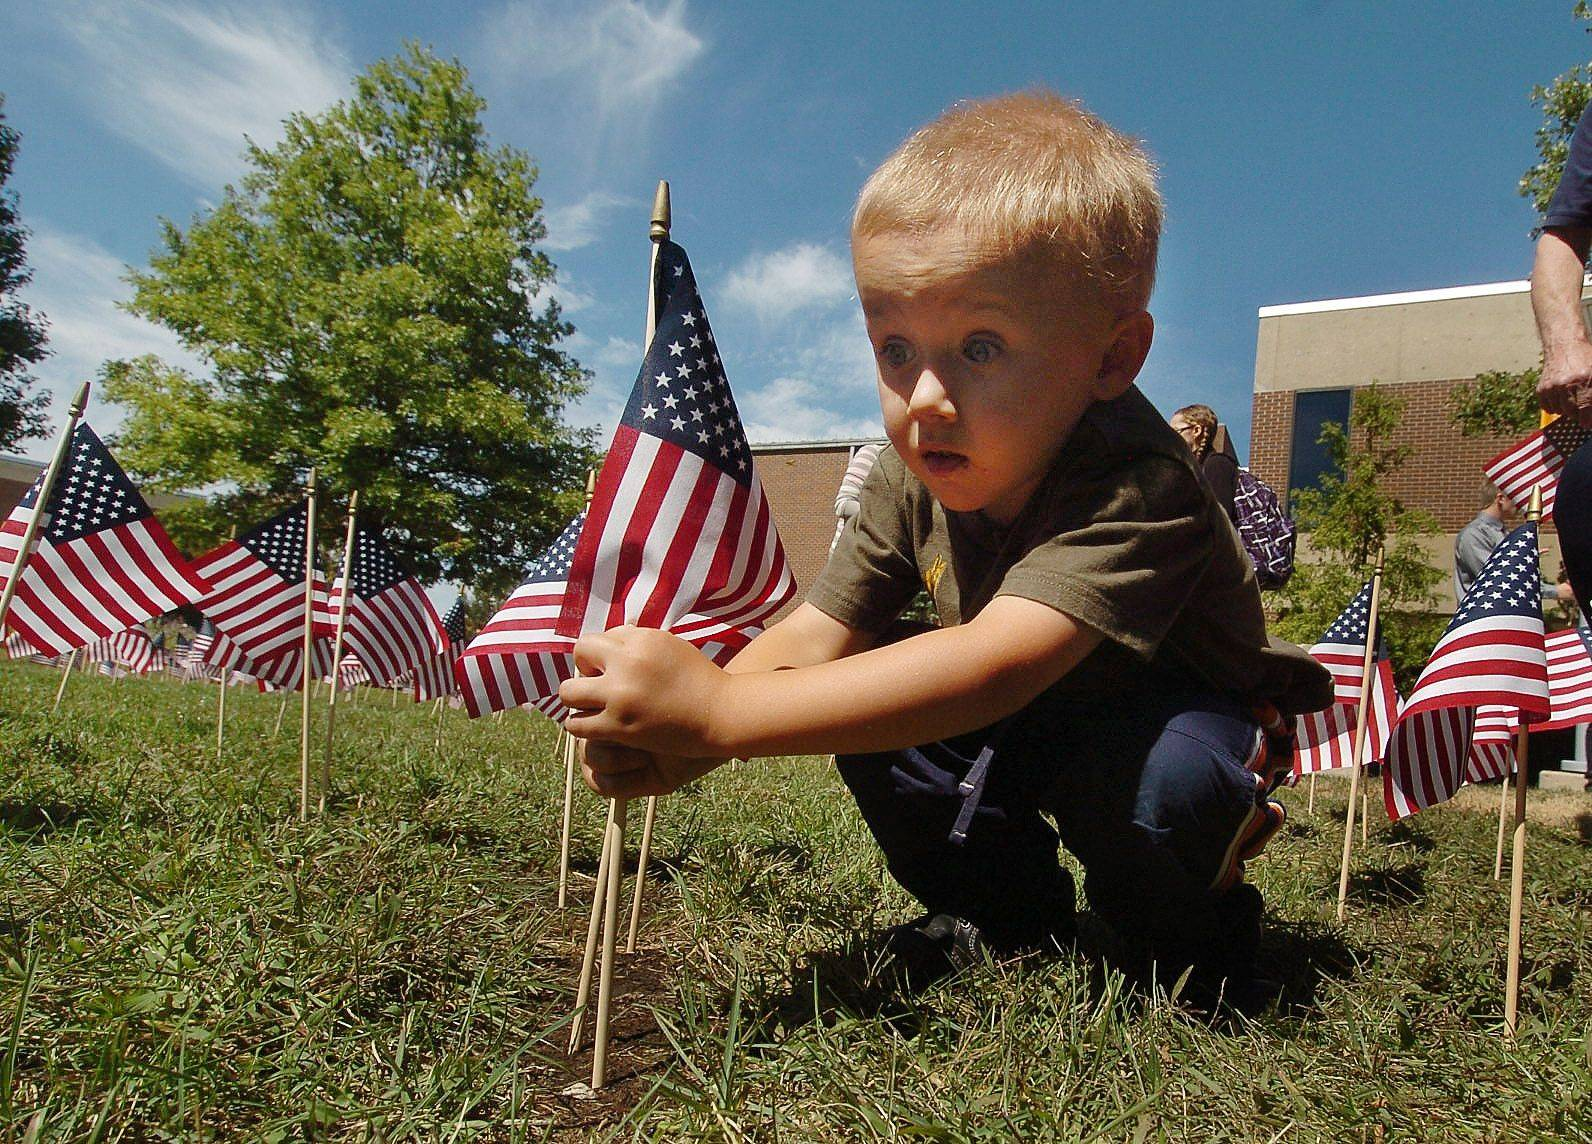 4-year-old Jack Daly plants a flag during the Harper College observation for the 10th anniversary of the Sept. 11 terrorist attacks.